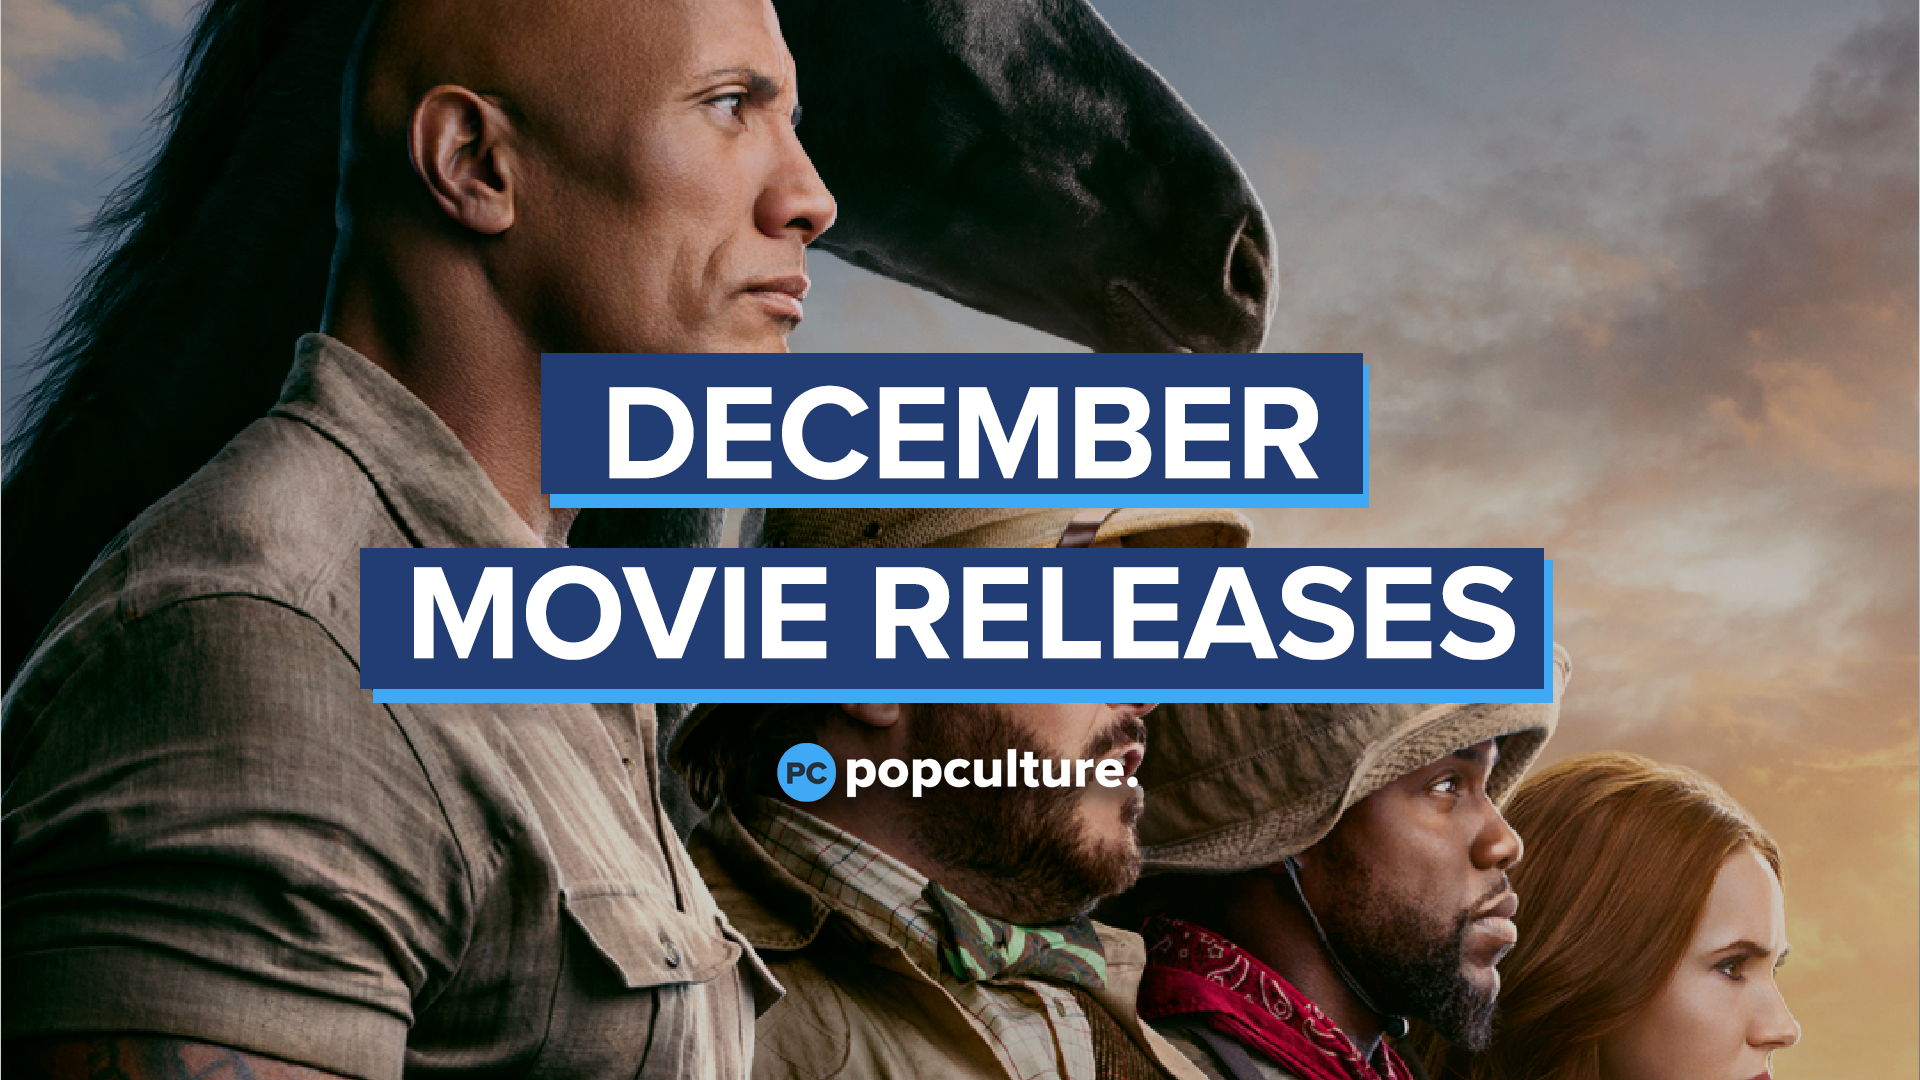 Everything Coming to Theaters in December - PopCulture screen capture